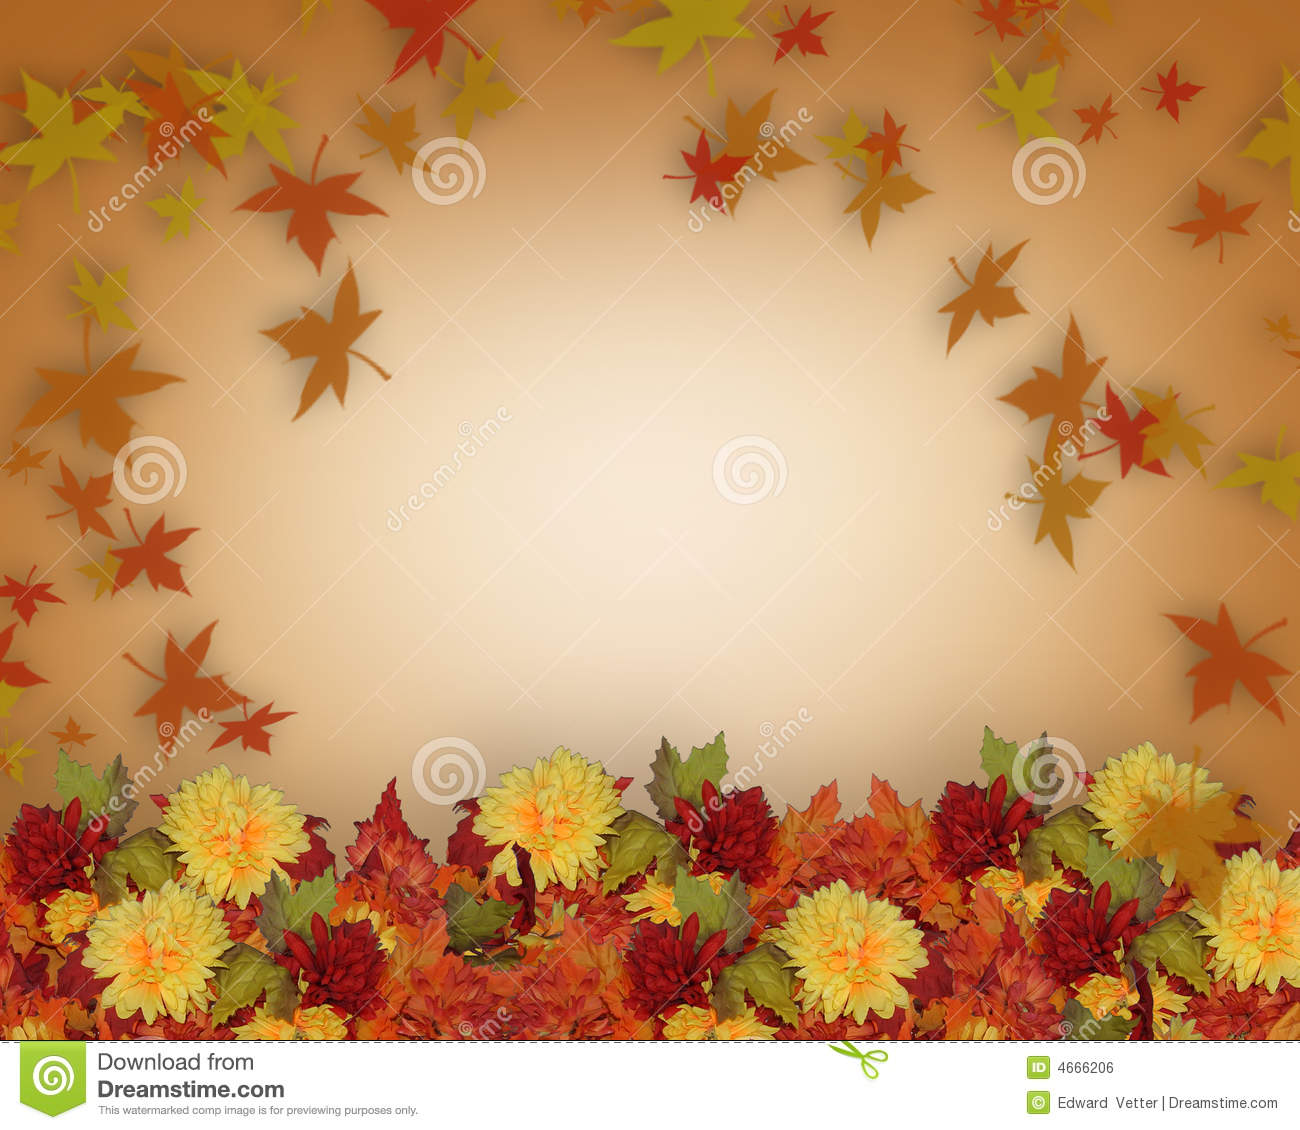 Thanksgiving fall leaves and flowers border design stock thanksgiving fall leaves and flowers border design toneelgroepblik Gallery